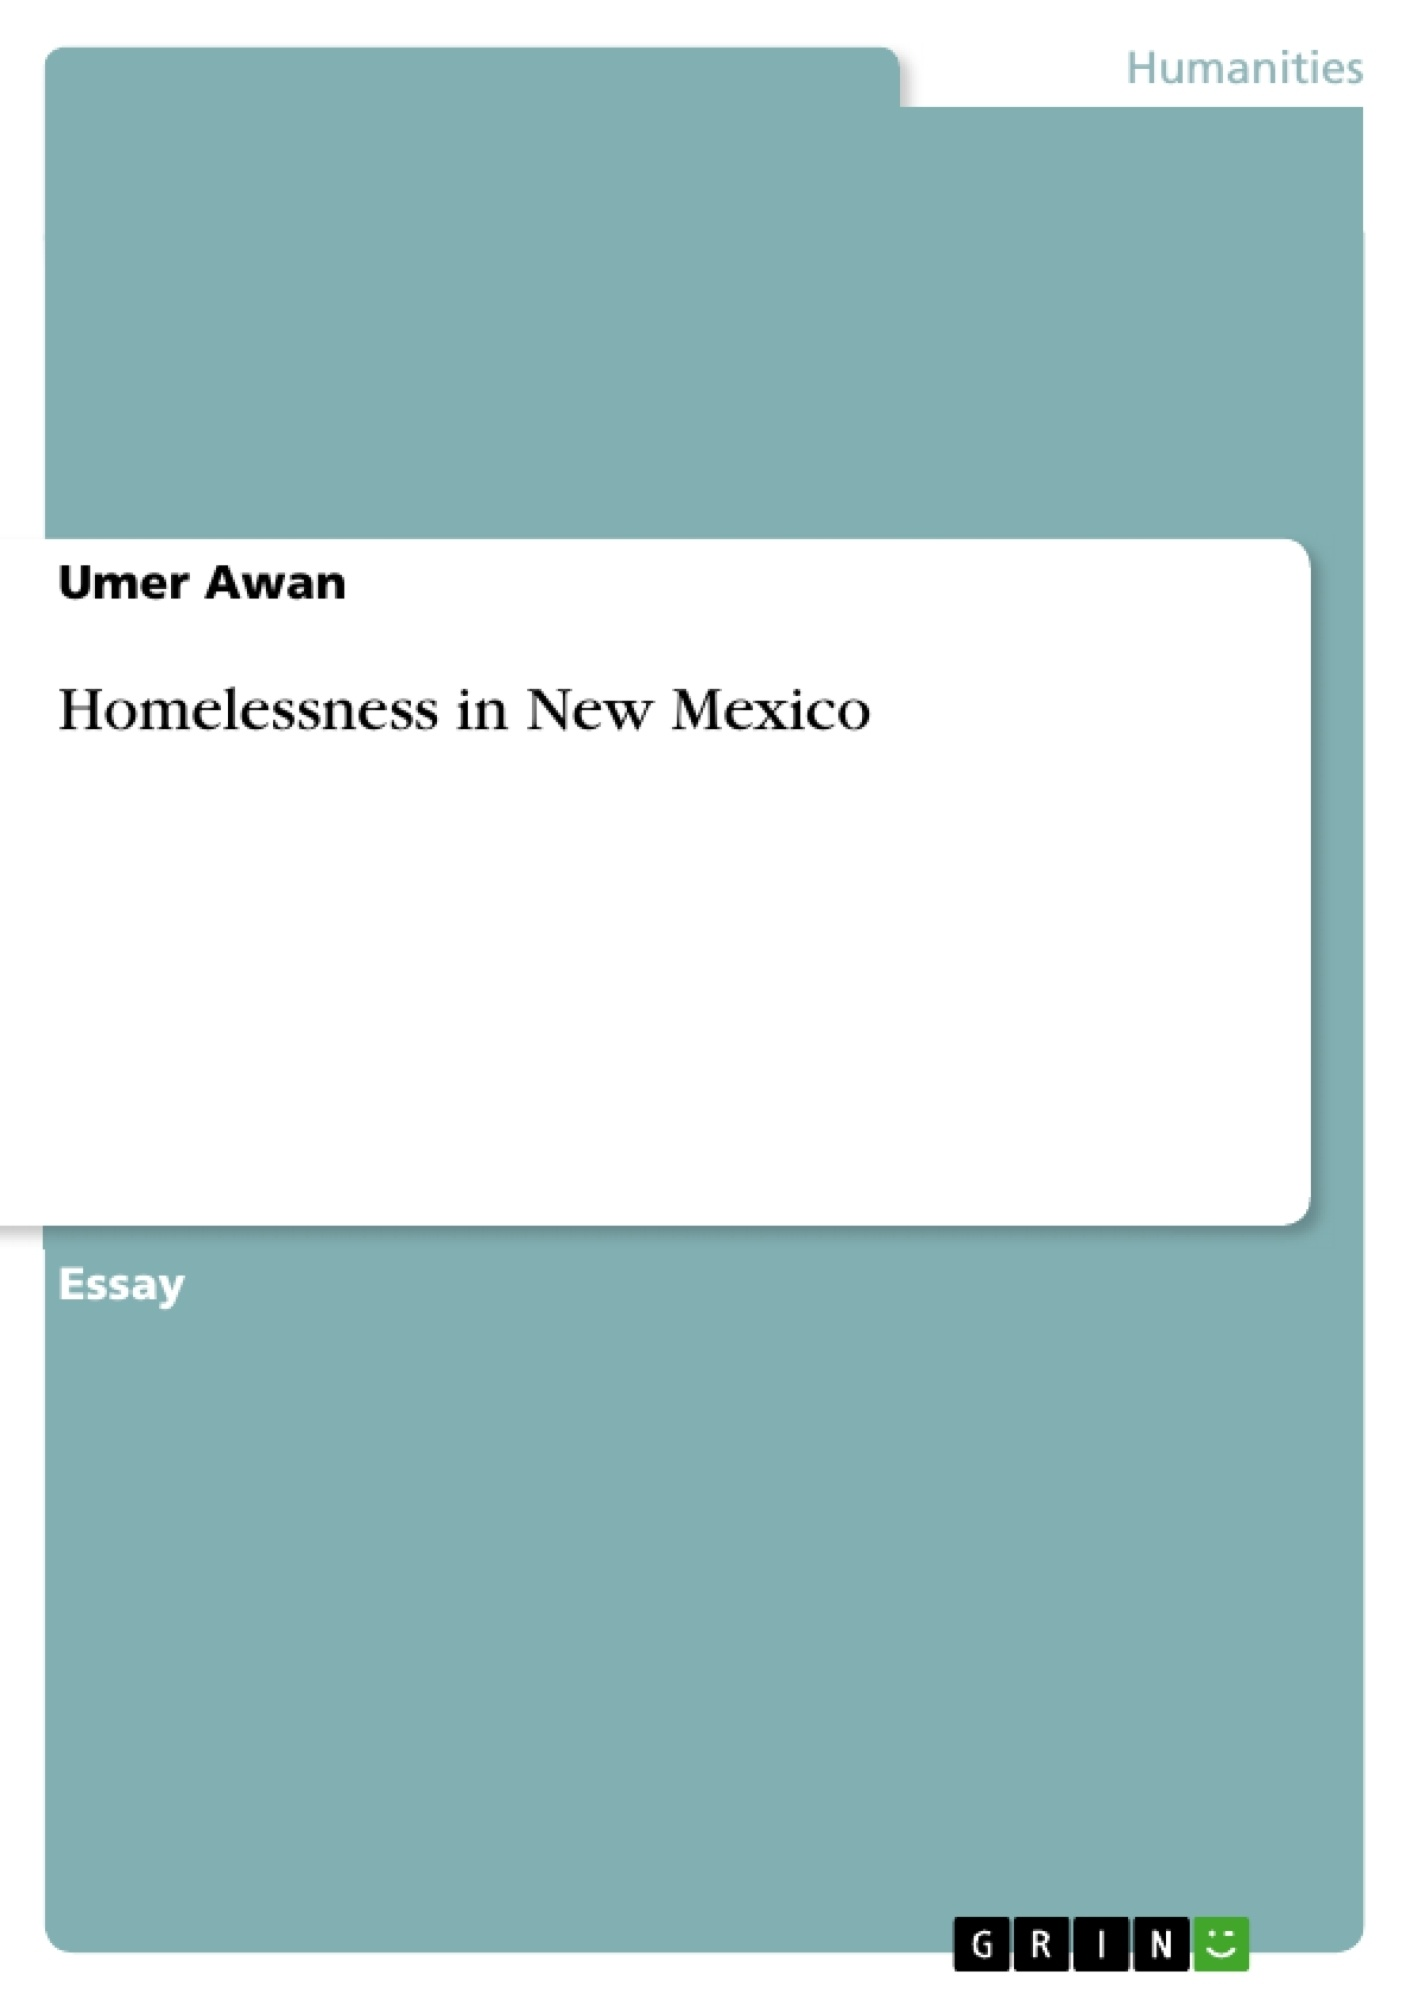 Title: Homelessness in New Mexico